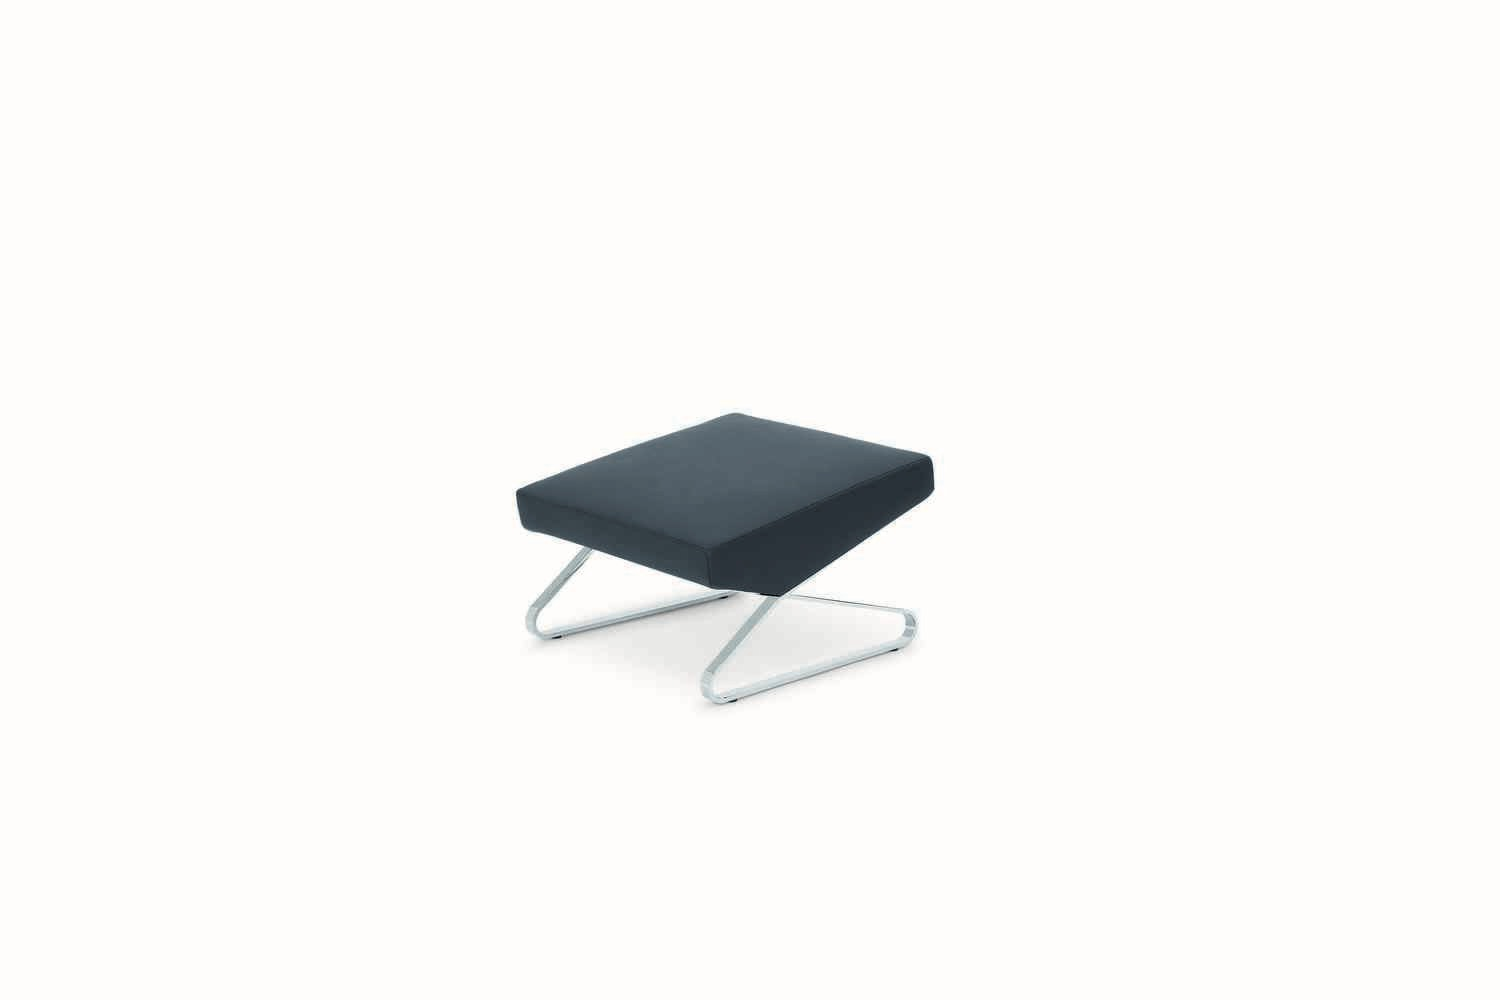 Satyr Stool by ForUse for ClassiCon